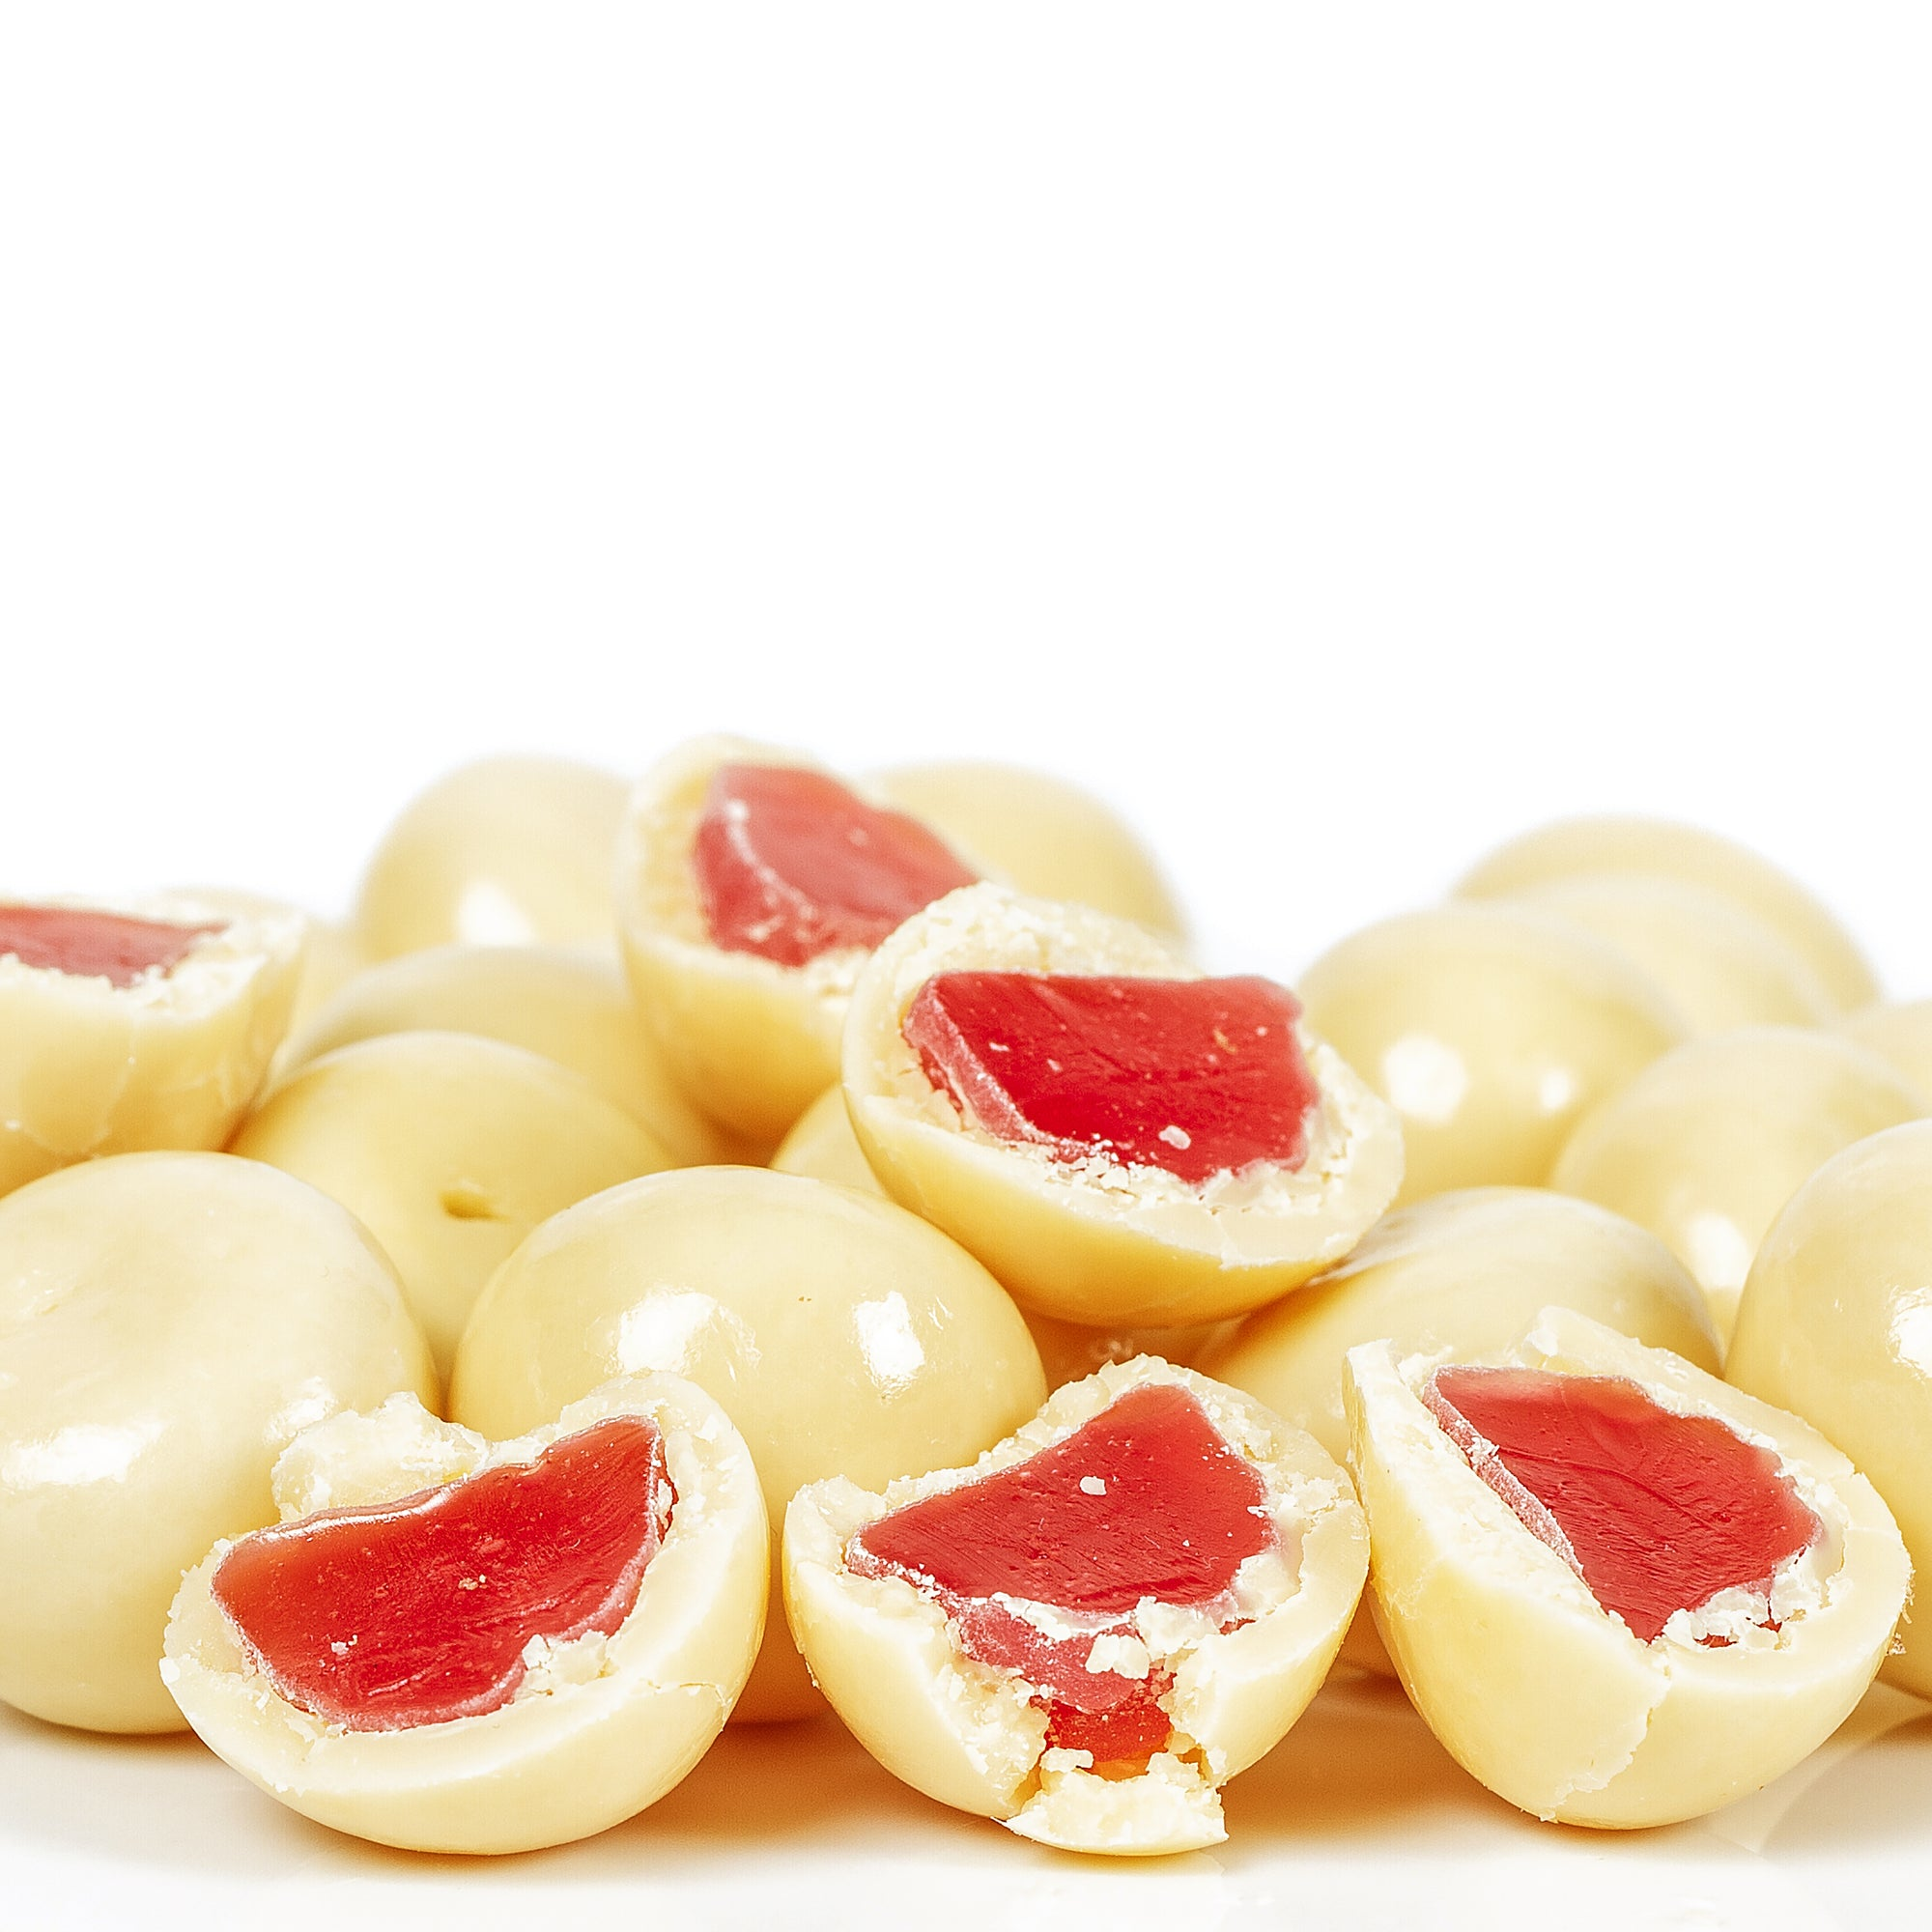 210g White Chocolate Coated Raspberries